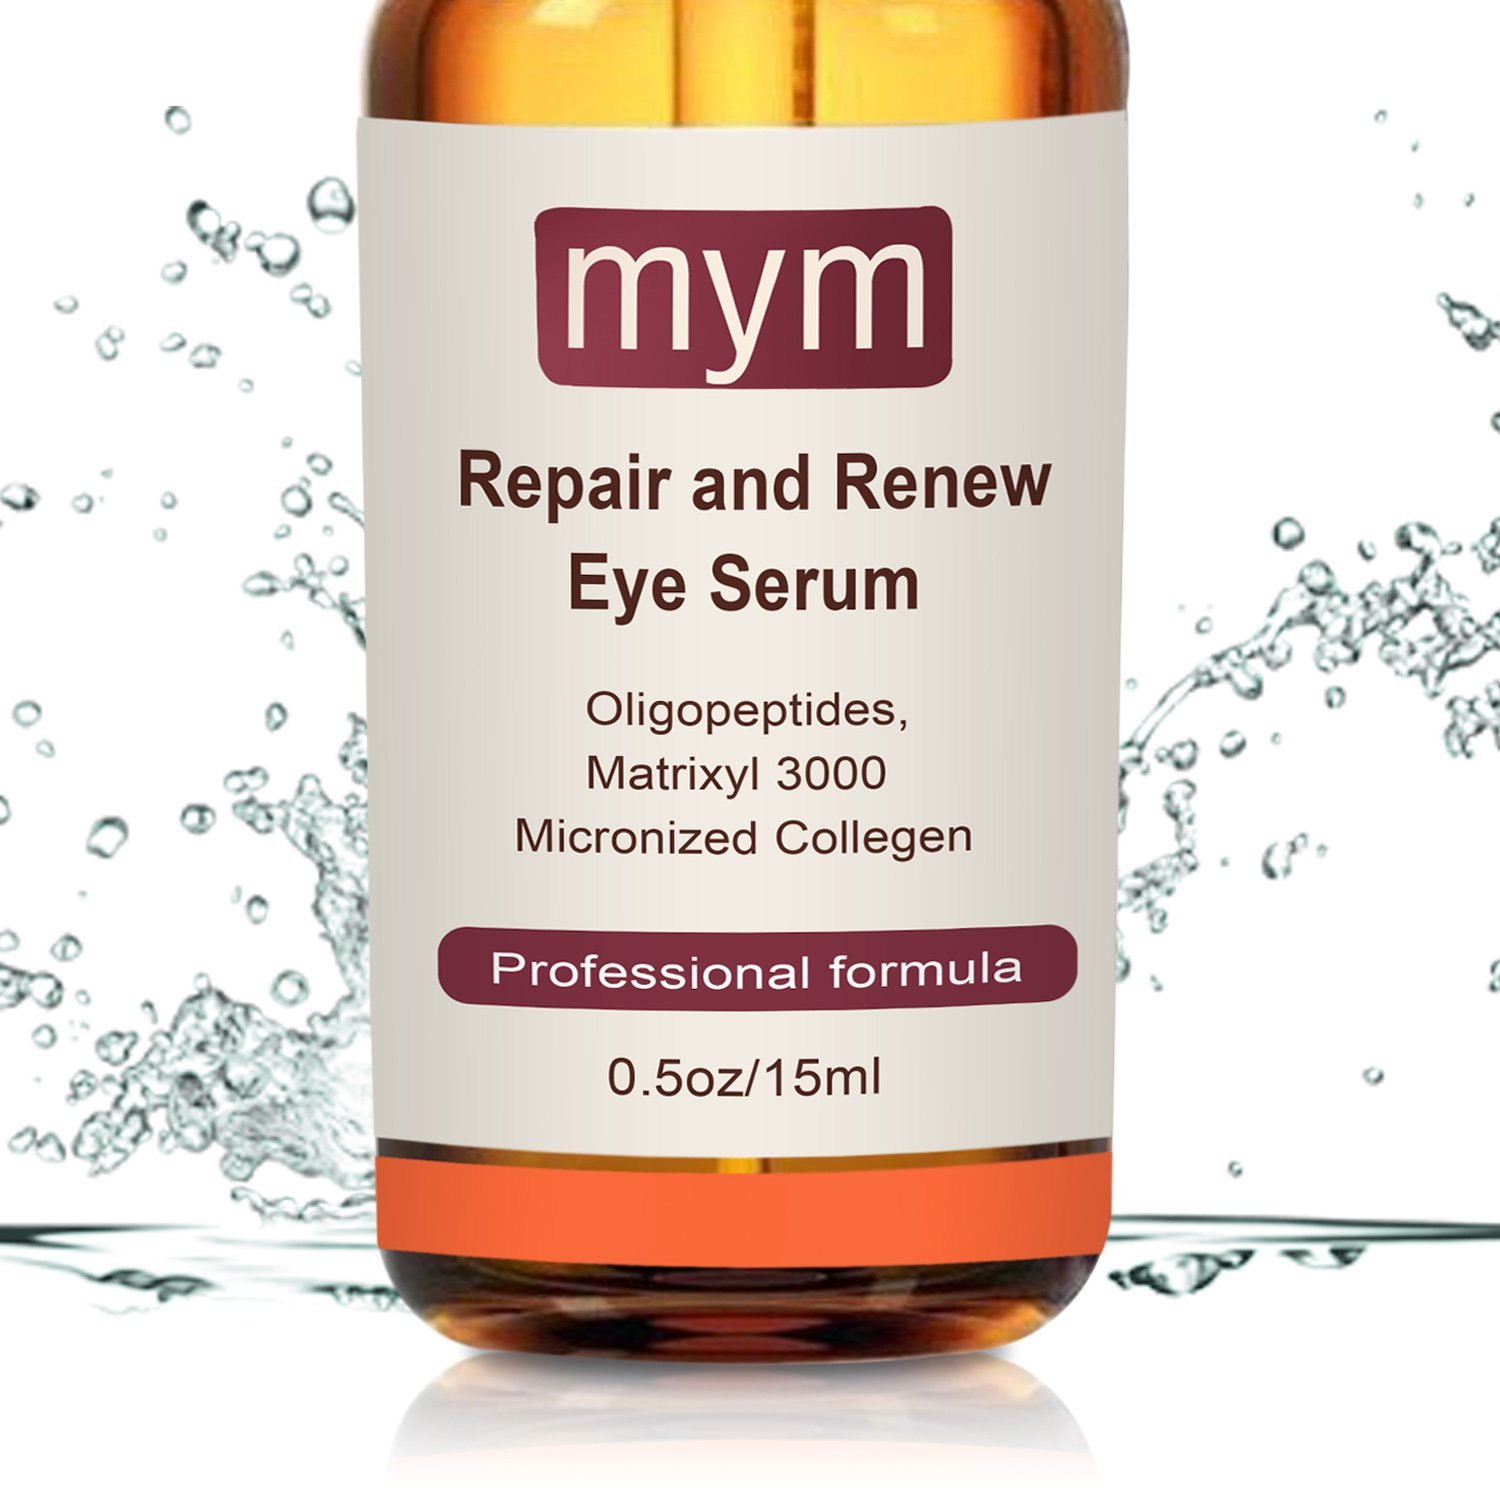 The Best Eye Serum 100% Natural Anti-aging for Wrinkles, Dark Circles, Puffiness, Eye Bags and Crow's Feet with Oligopeptides, Matrixyl 3000 Peptides + Micronized Collagen. Made in USA